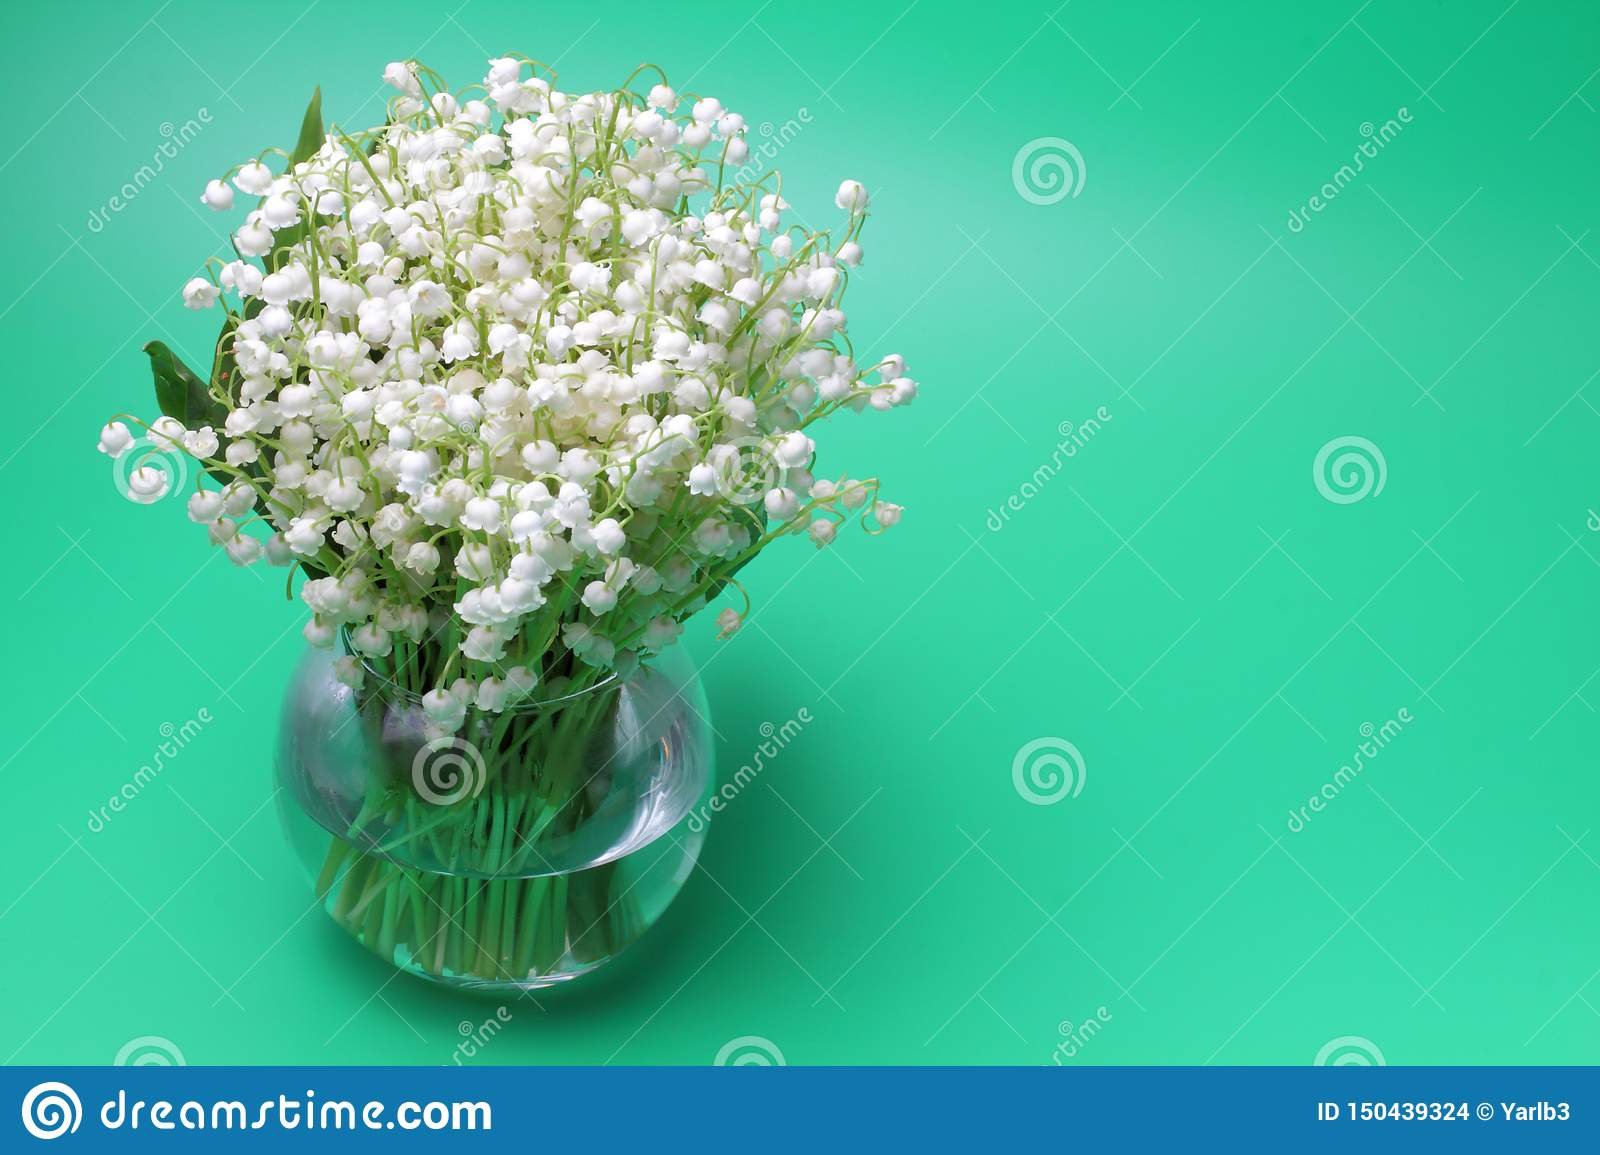 Bouquet of forest lilies Convallaria